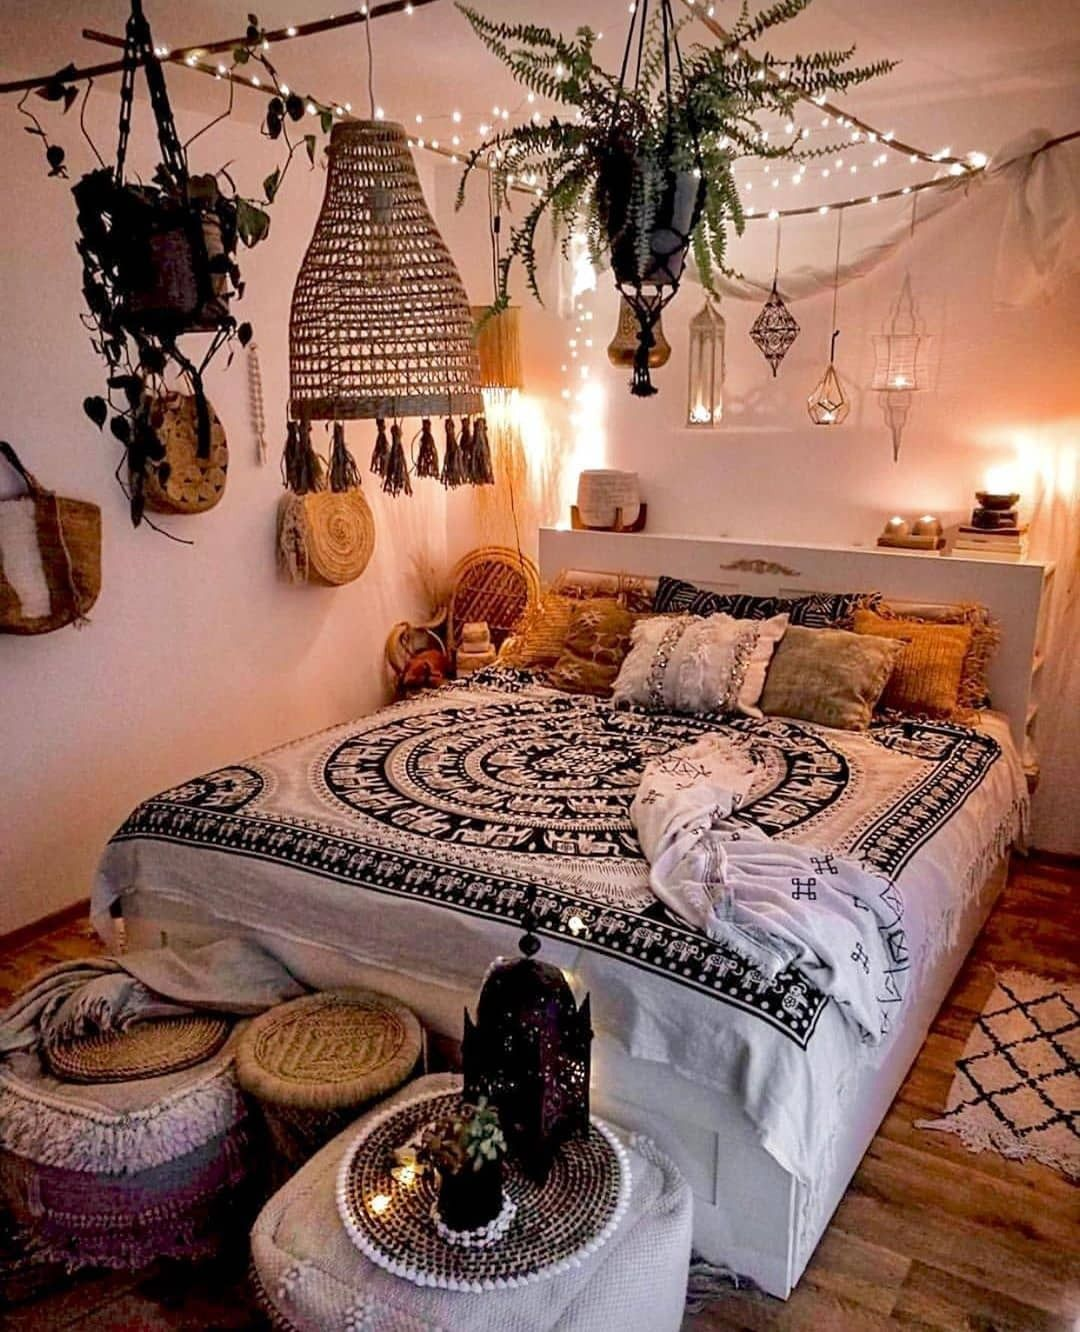 Awesome Bohemian Bedroom Designs and Decor | Bohemian Style Ideas 🧖♂️Great inspiration, very nice, visit us at desmondo.de